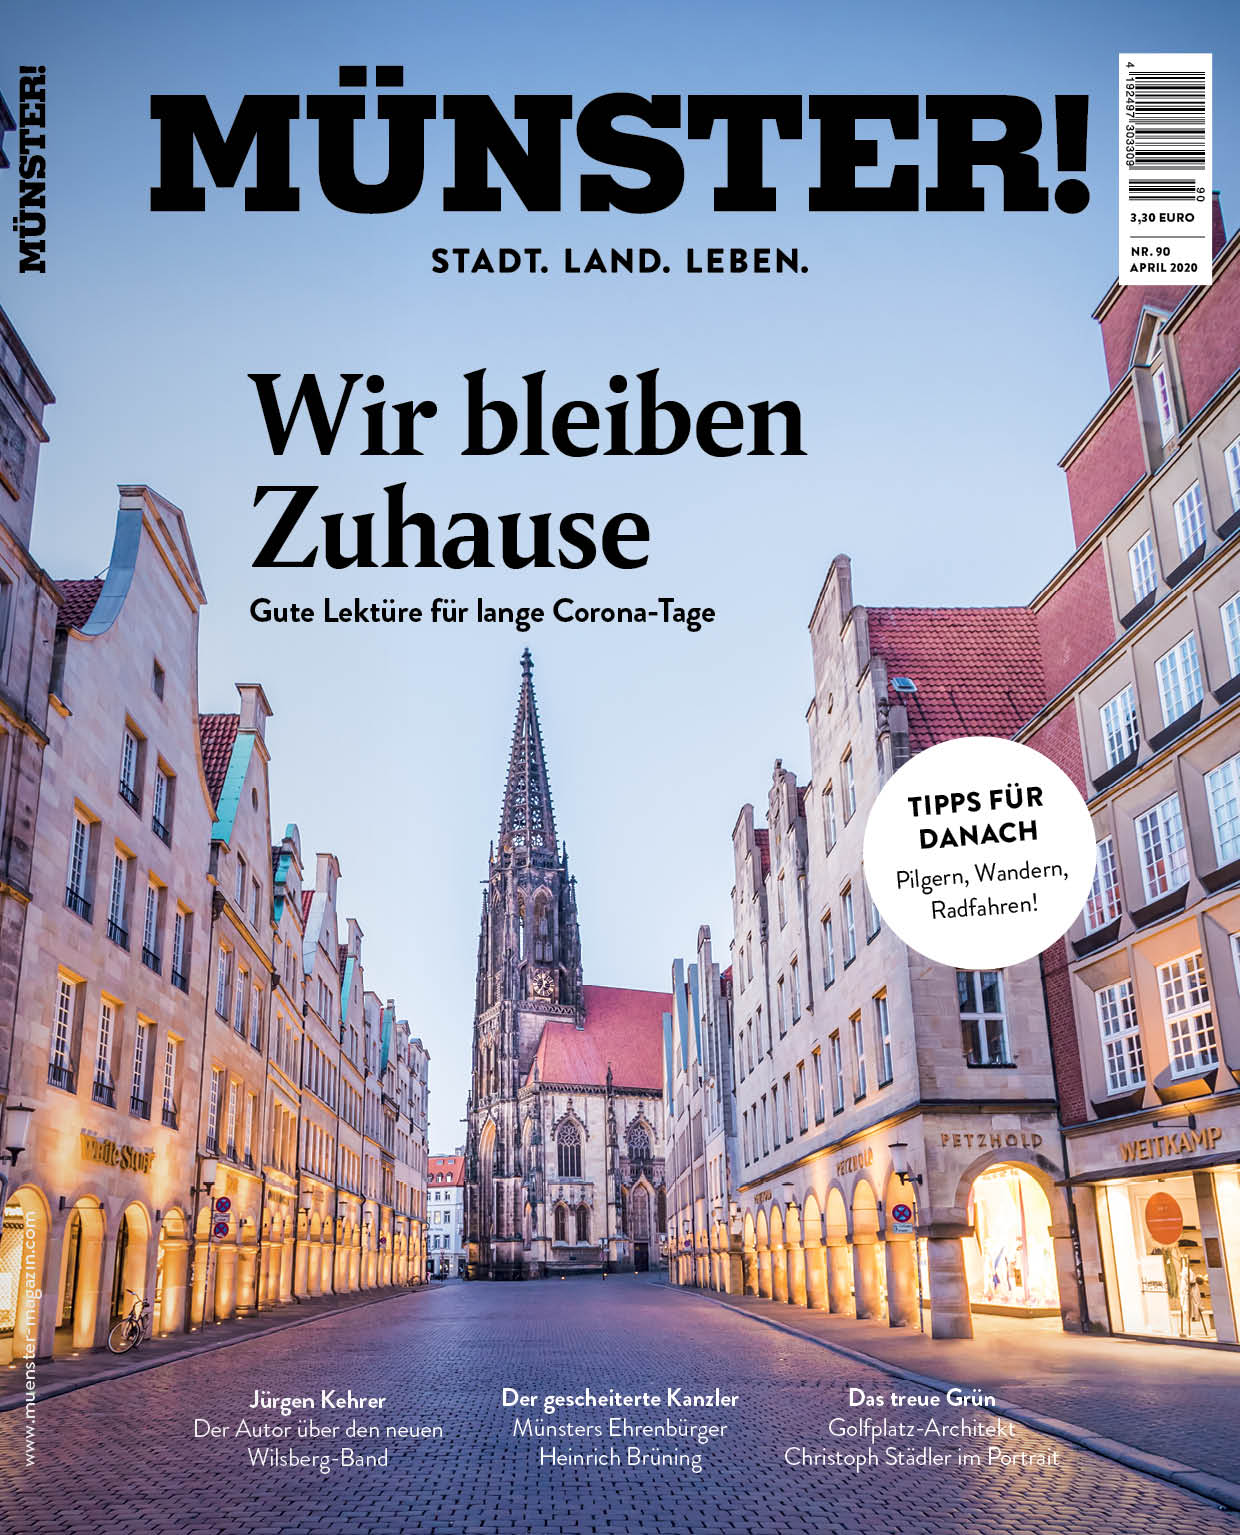 MÜNSTER! April 2020